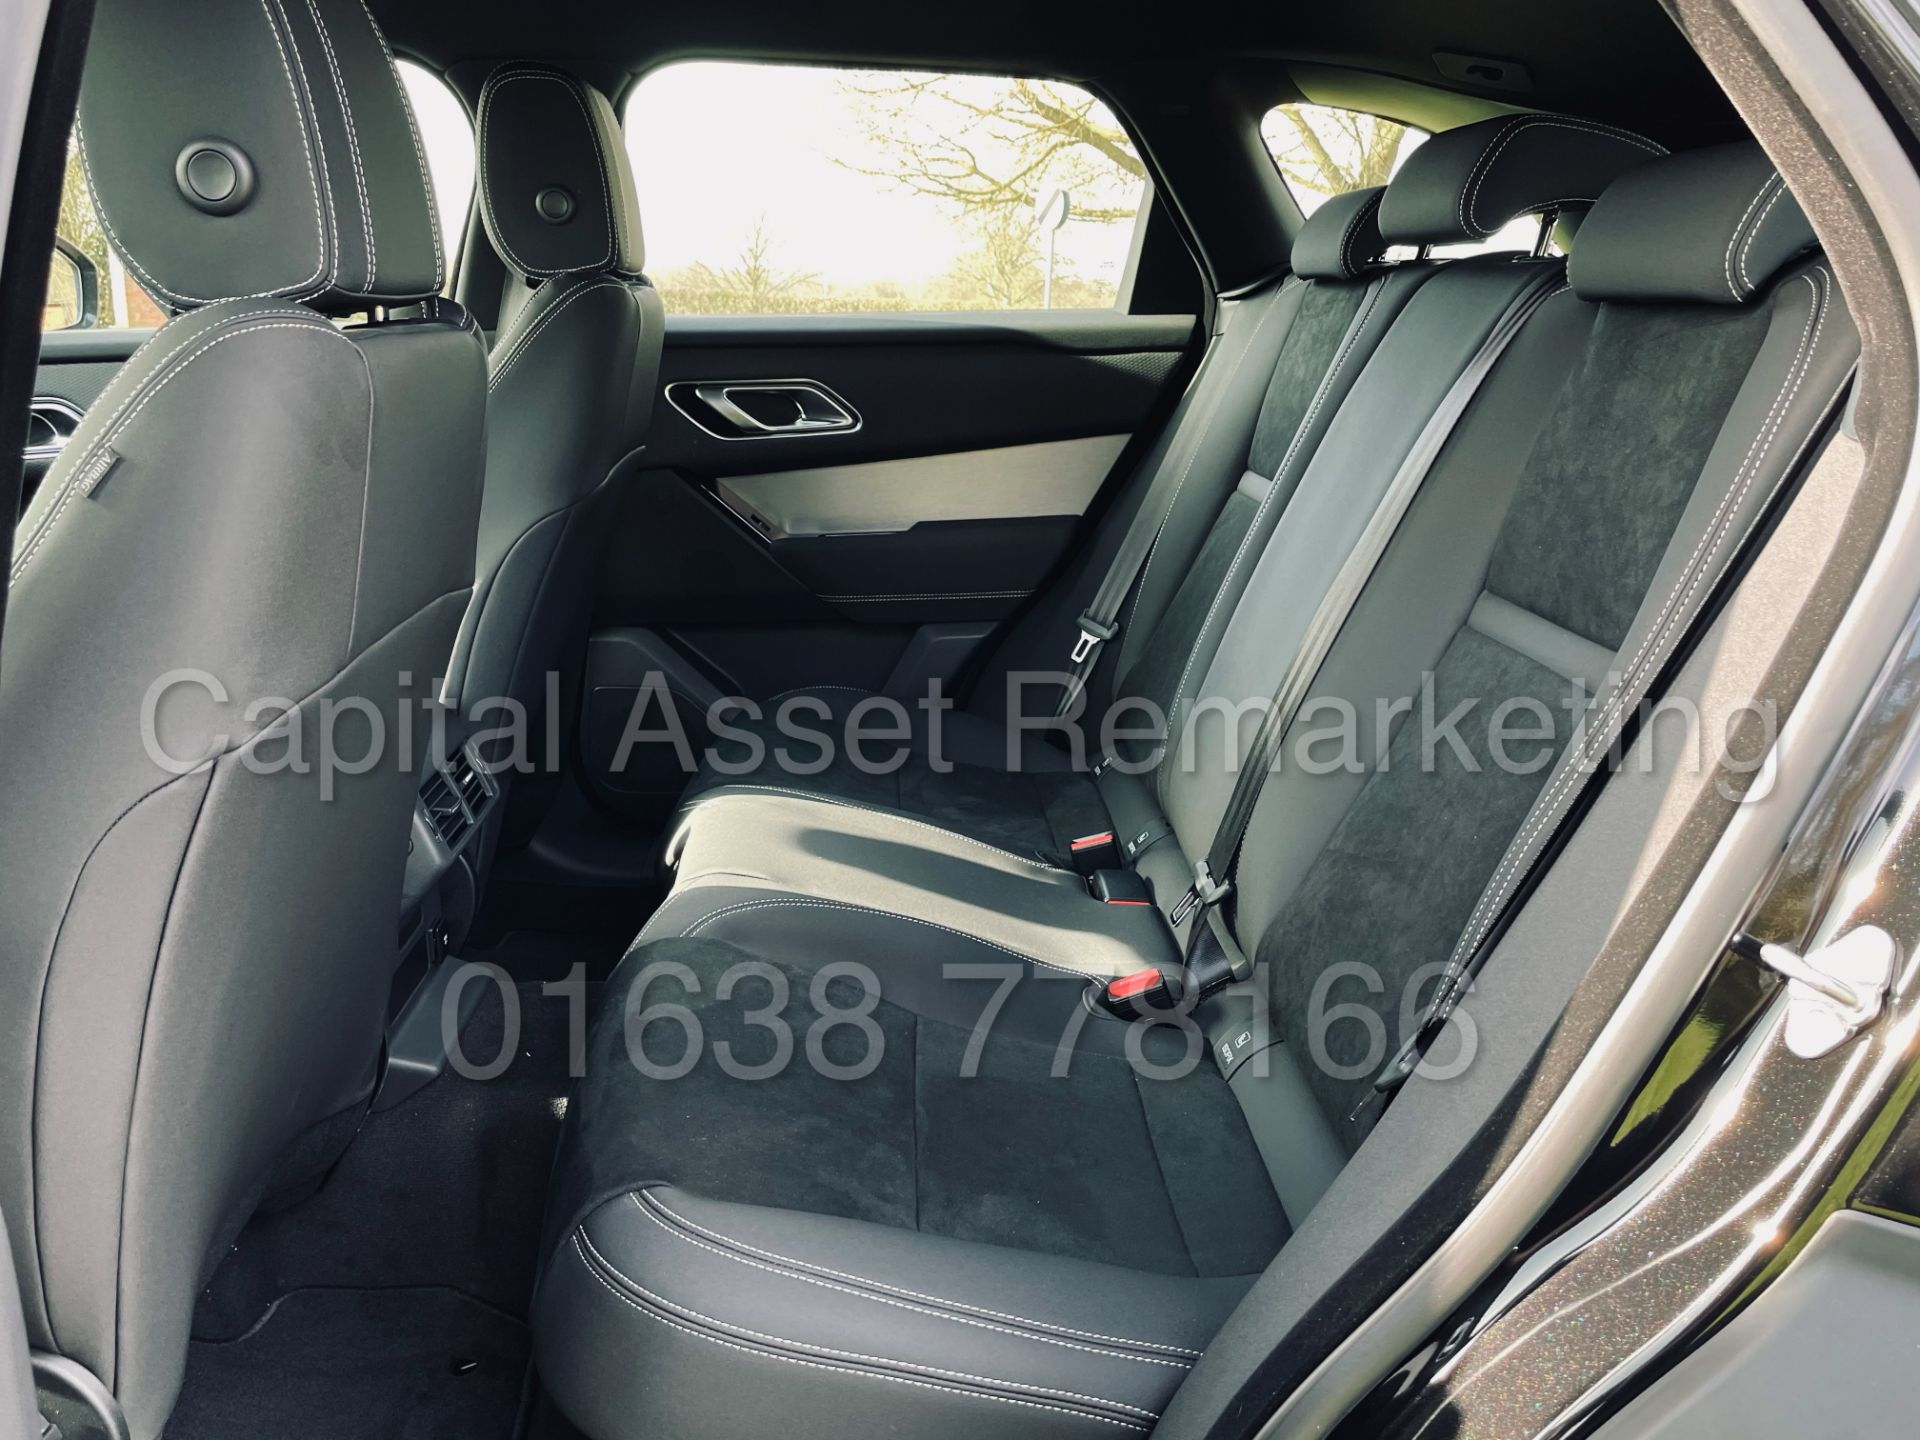 (On Sale) RANGE ROVER VELAR *R-DYNAMIC* SUV (2021) *8 SPEED AUTO - LEATHER* (DELIVERY MILES) - Image 27 of 50